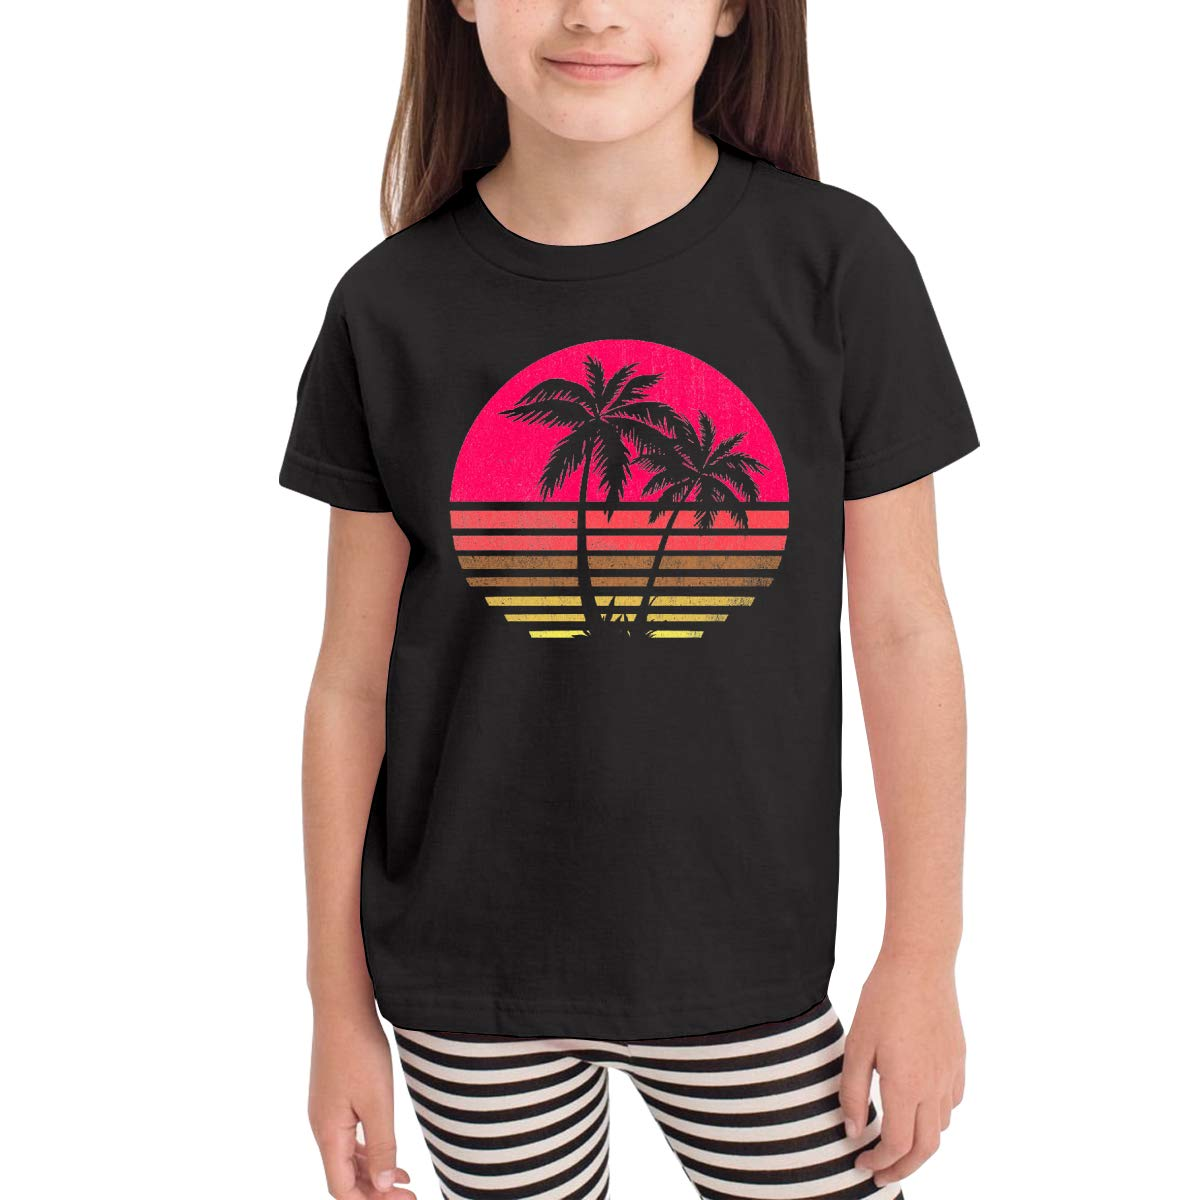 Onlybabycare Retro Costa Rica Palm Tree 100/% Cotton Toddler Baby Boys Girls Kids Short Sleeve T Shirt Top Tee Clothes 2-6 T